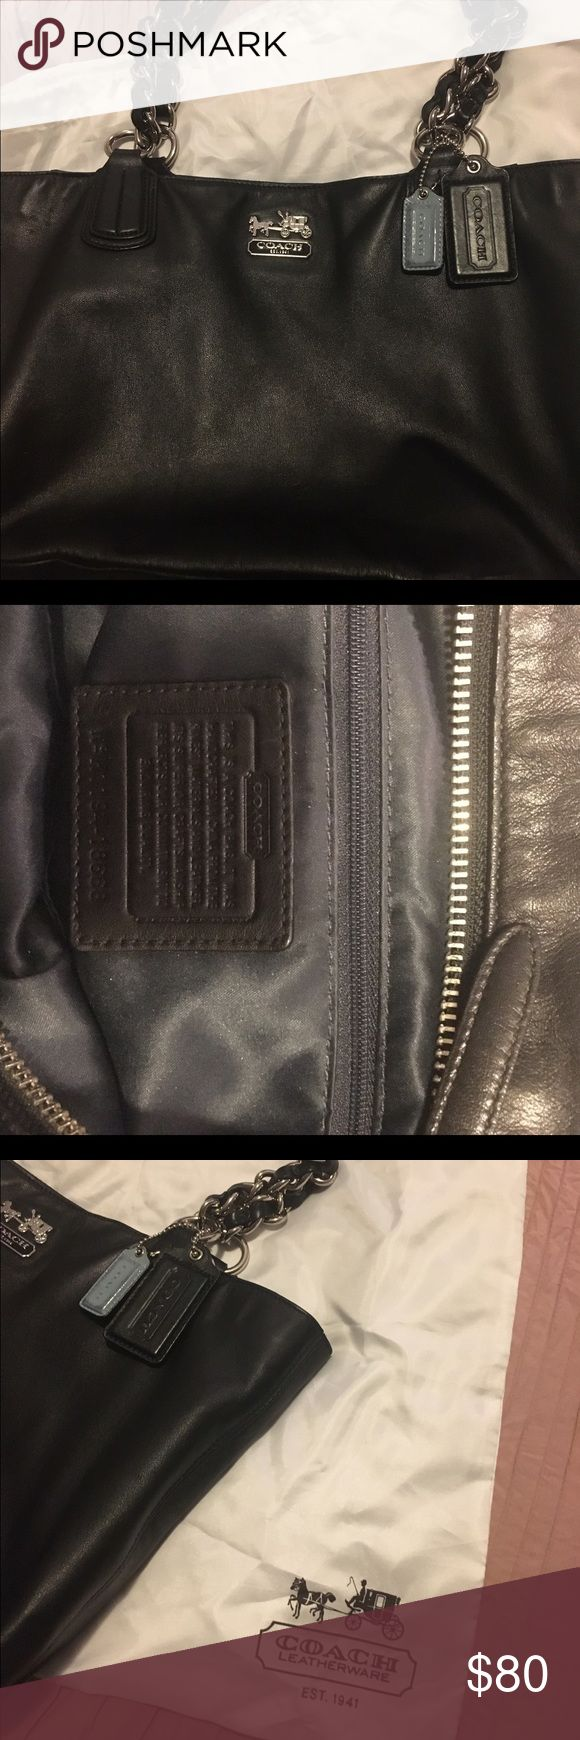 Authentic Coach Purse Authentic Black Coach Purse with chain and leather straps. Used, but still in good clean condition. 🖤 Comes with the Coach bag Bags Shoulder Bags